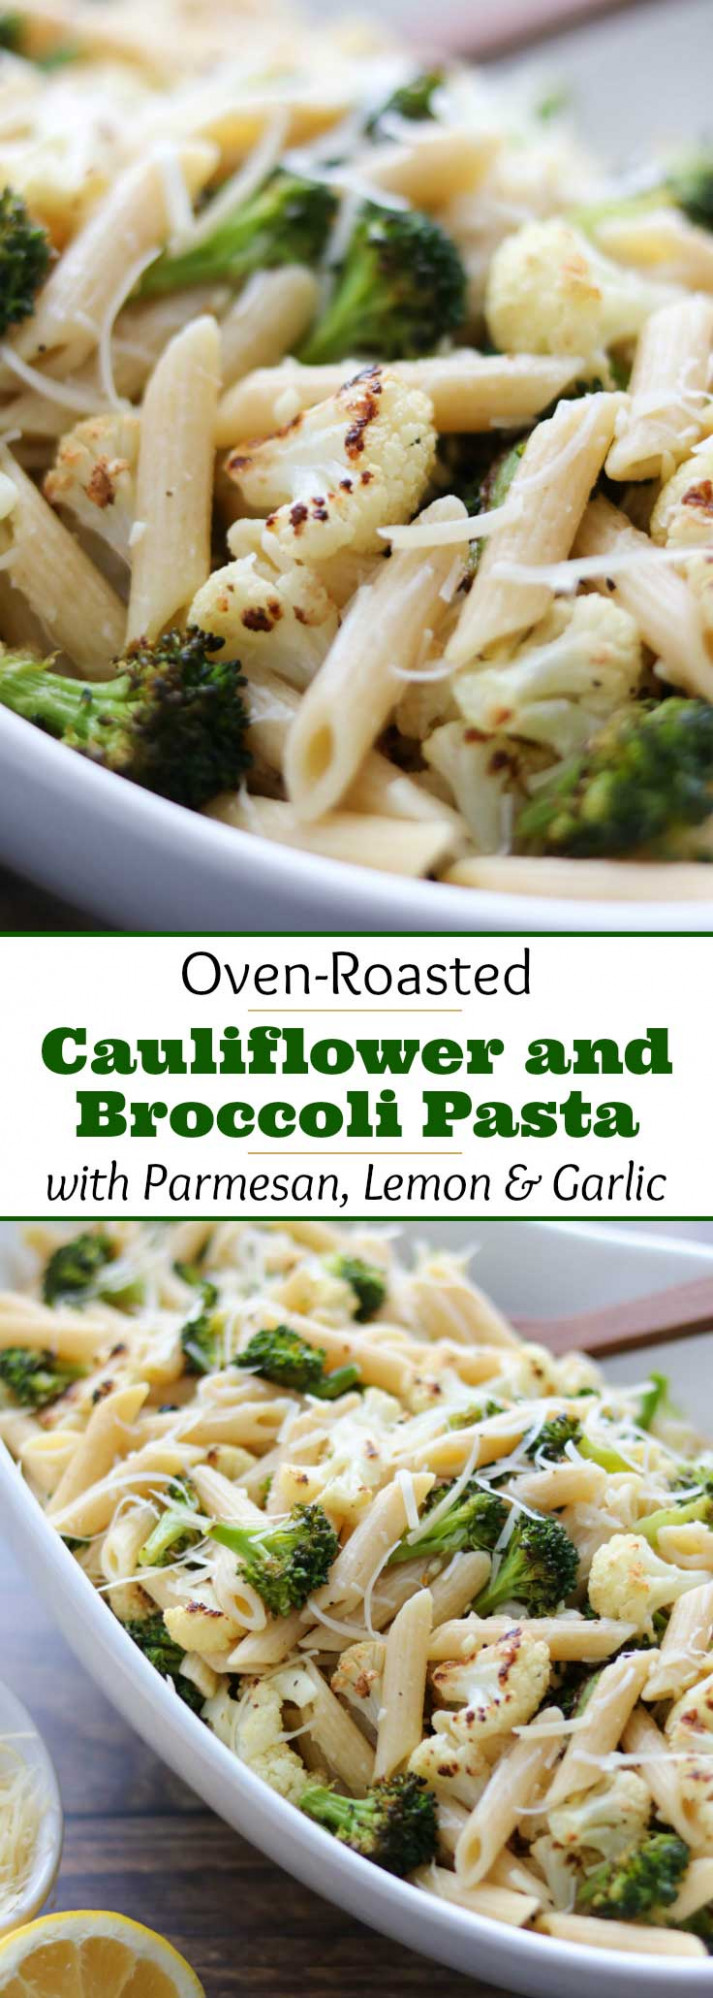 Roasted Broccoli and Cauliflower Pasta with Parmesan ...